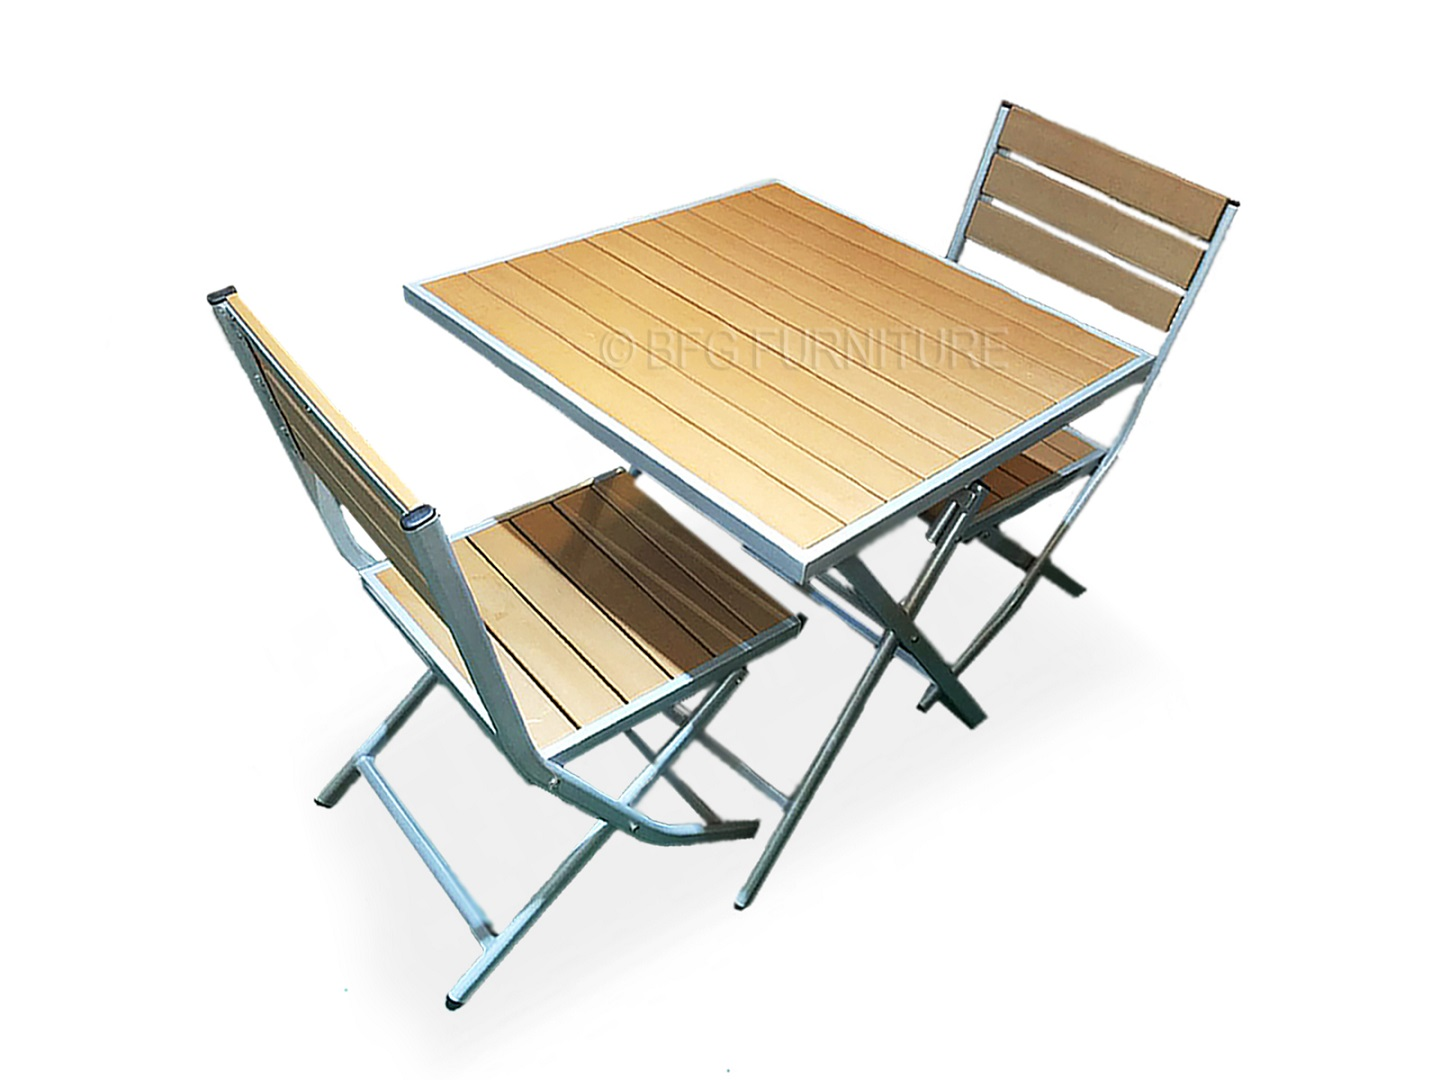 Foldable table and chairs outdoor outdoor furniture for Yard table and chairs